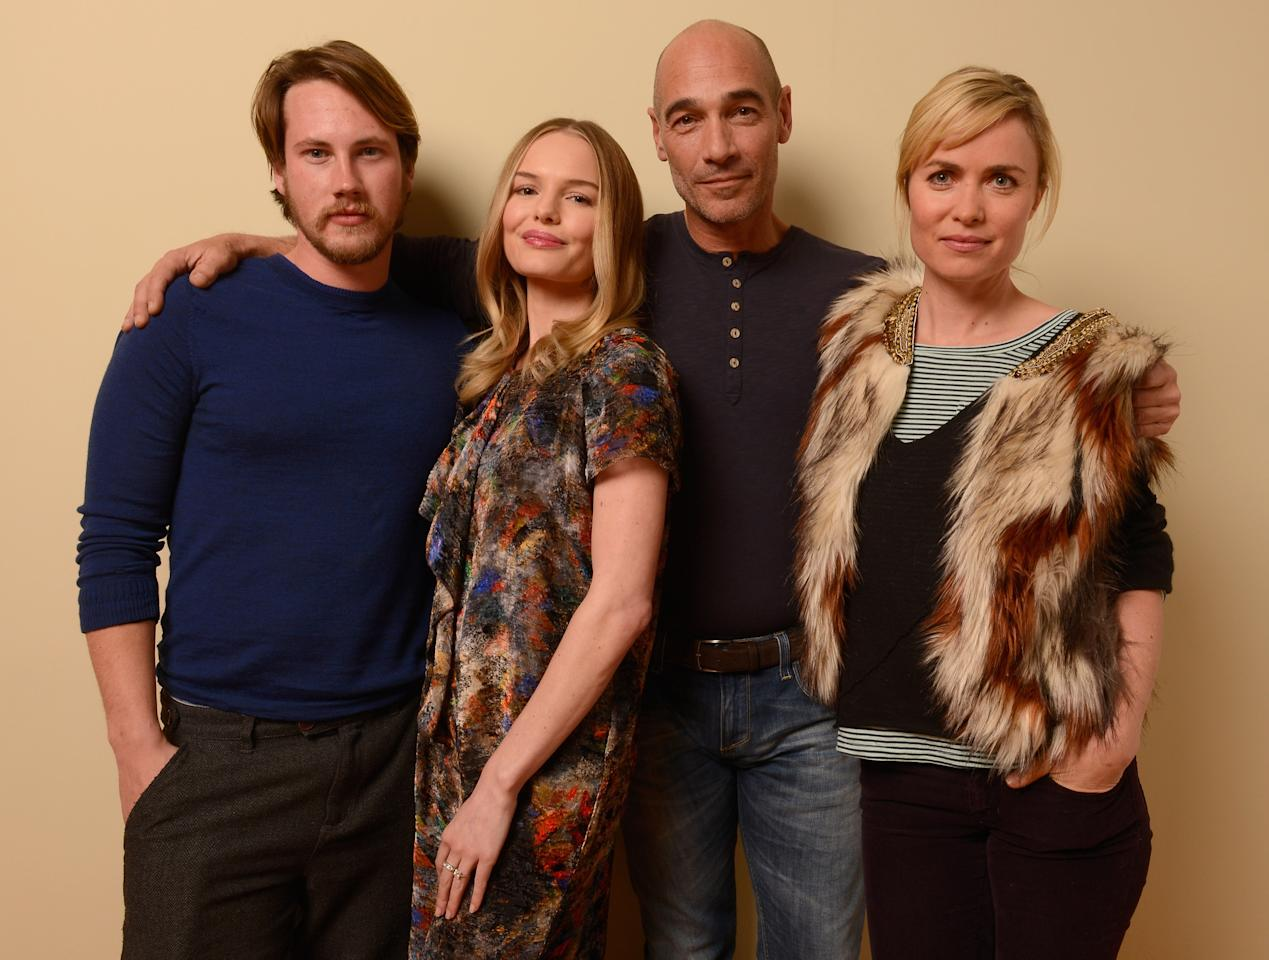 PARK CITY, UT - JANUARY 22:  (L-R) Actors John Robinson, Kate Bosworth, Jean-Marc Barr and Radha Mitchell pose for a portrait during the 2013 Sundance Film Festival at the Getty Images Portrait Studio at Village at the Lift on January 22, 2013 in Park City, Utah.  (Photo by Larry Busacca/Getty Images)